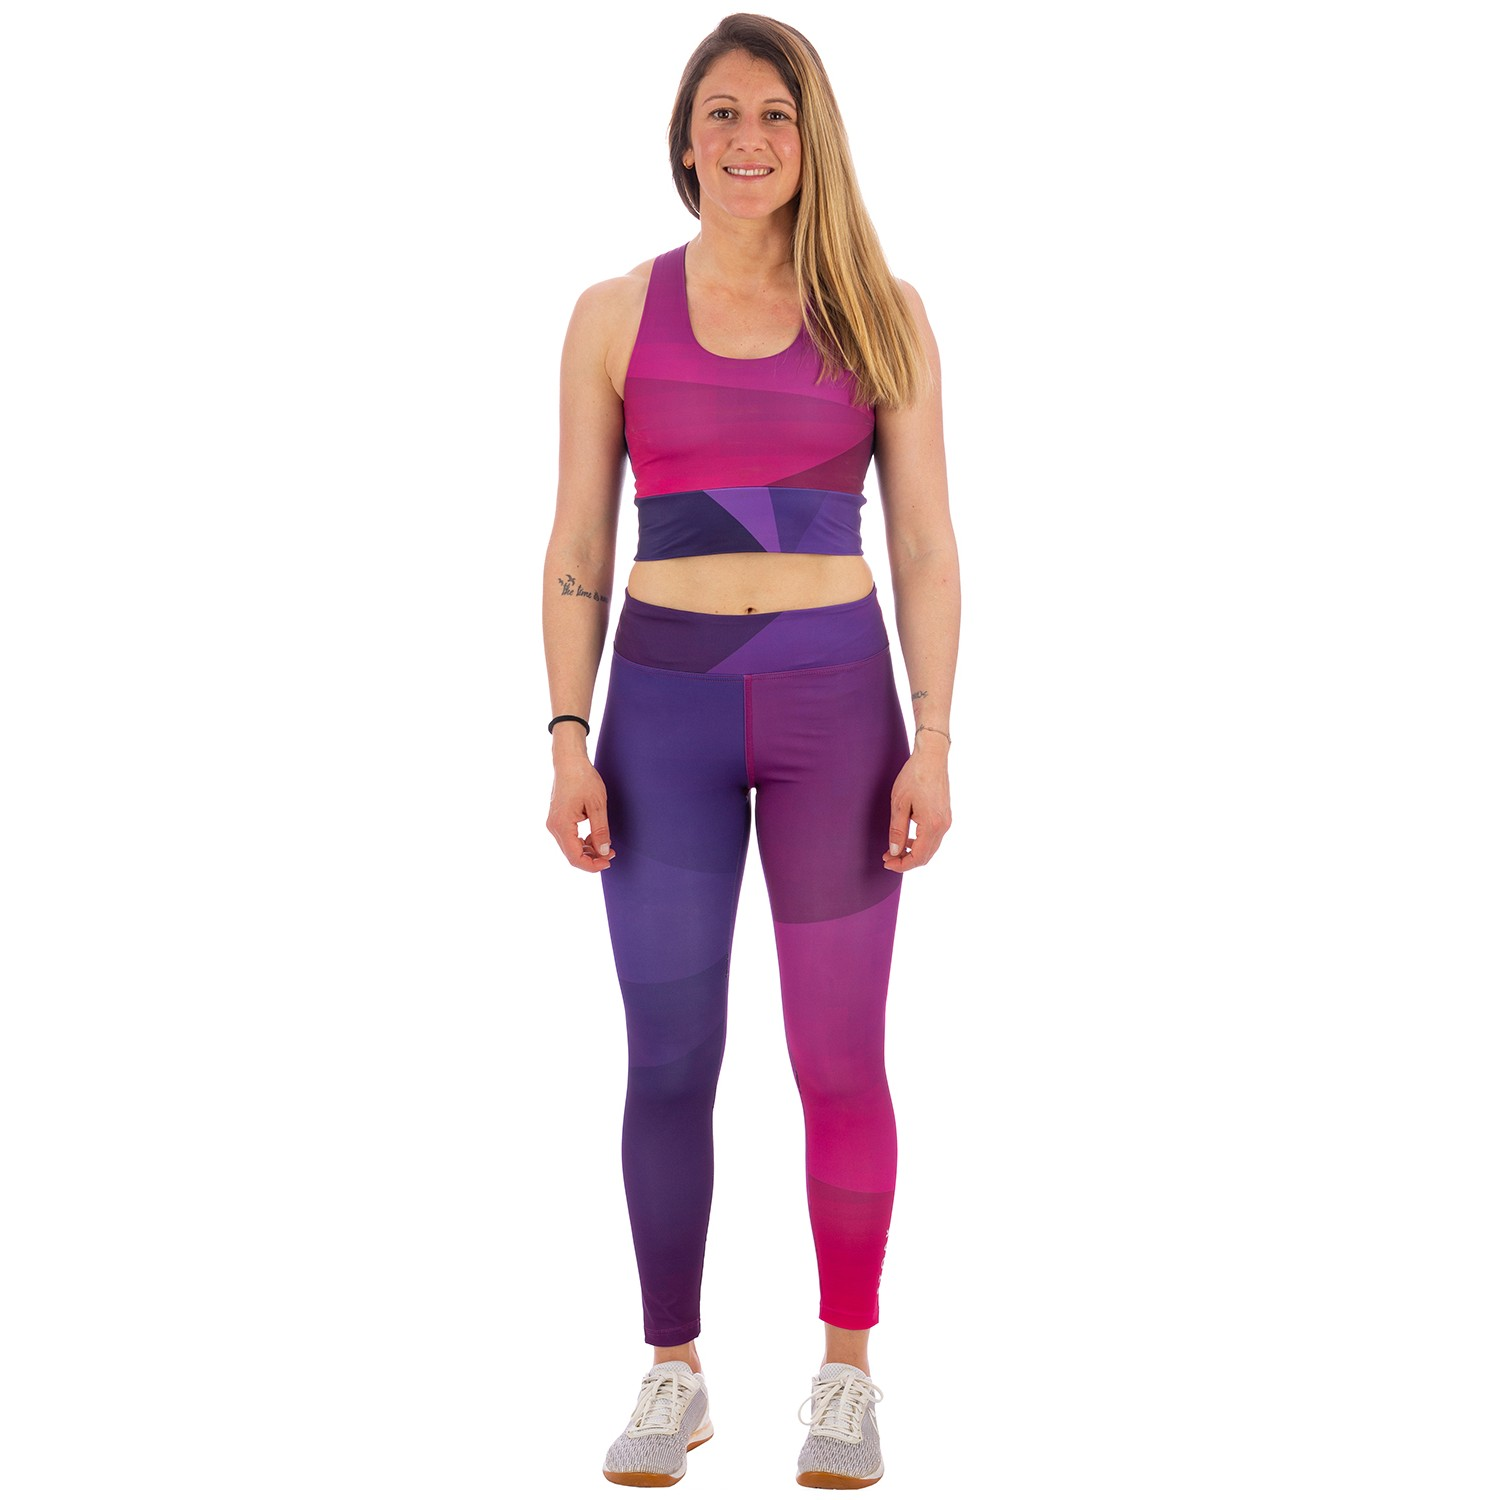 STOAK SUNSET - SUNSET Package Top + Leggings